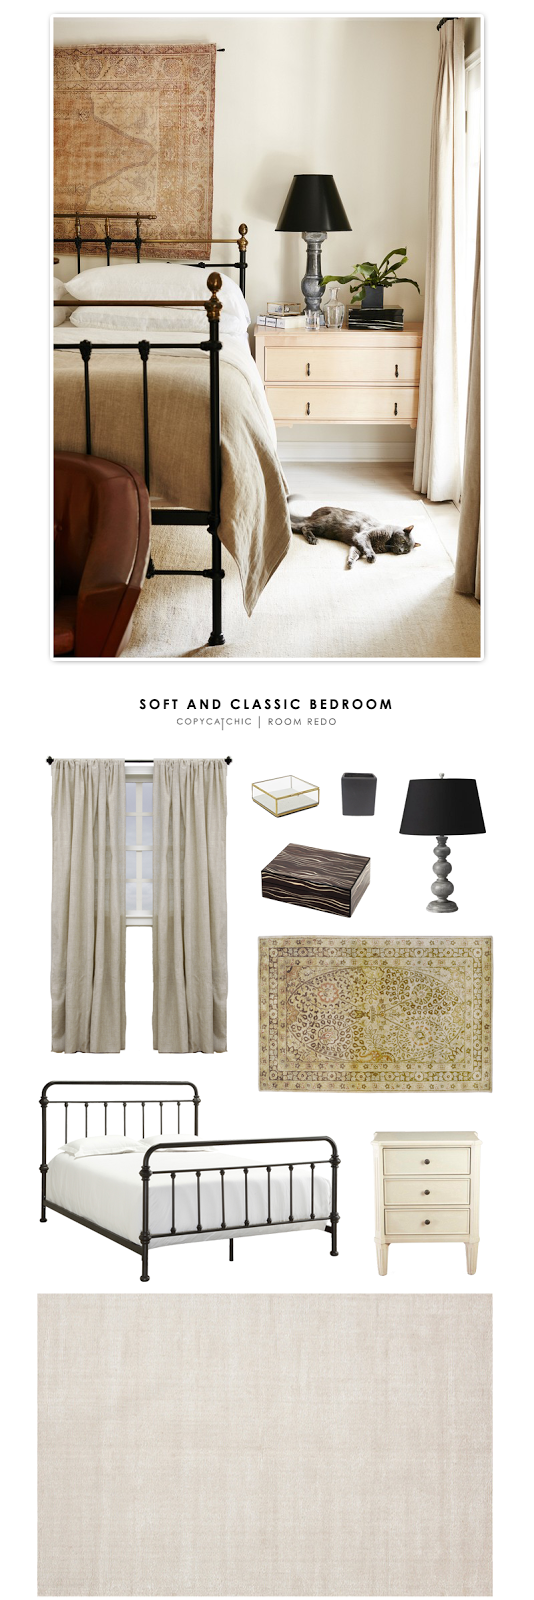 Katherine Power's soft and classic bedroom featured on My Domain and recreated for $1879